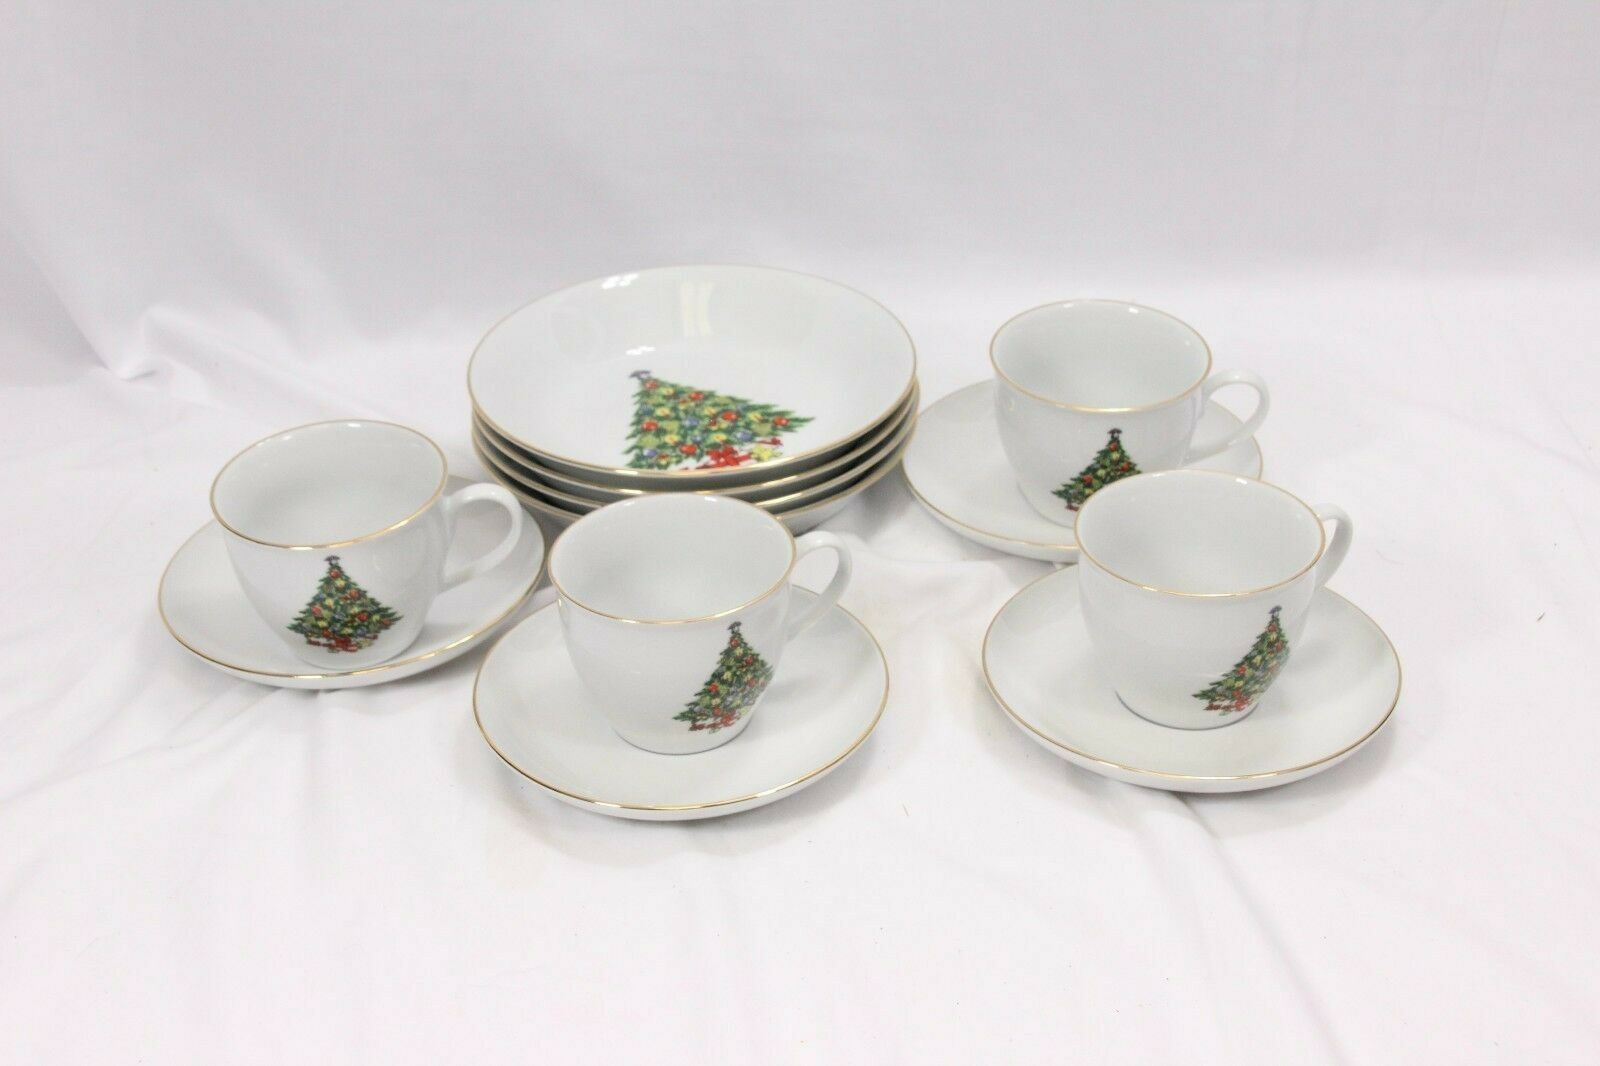 Jamestown Xmas Treasure Bowls Cups Saucers Lot of 12